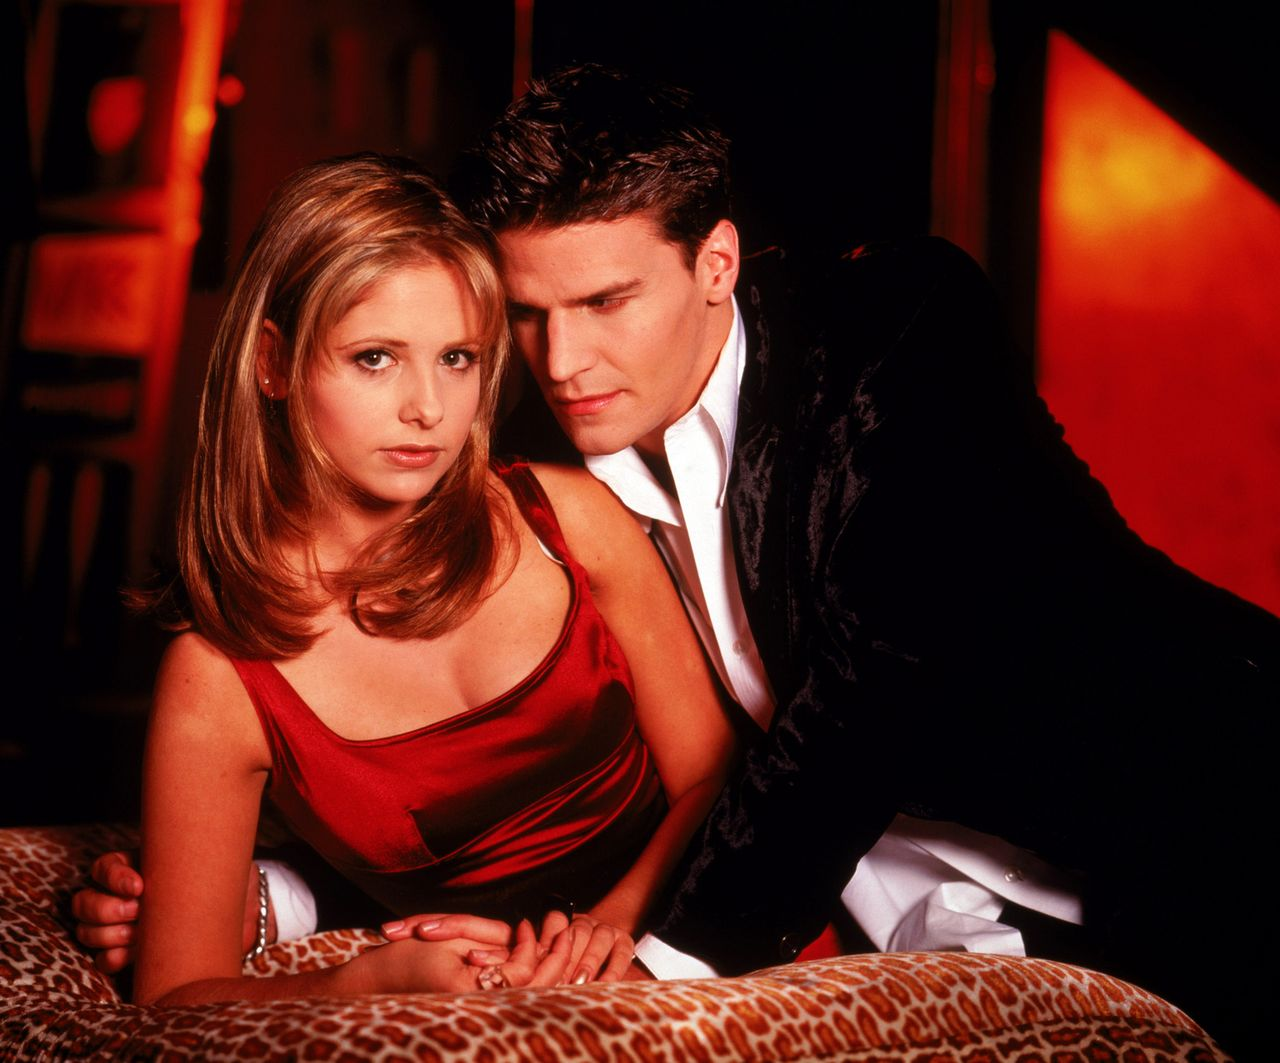 15. Angel and Buffy on 'Buffy the Vampire Slayer'